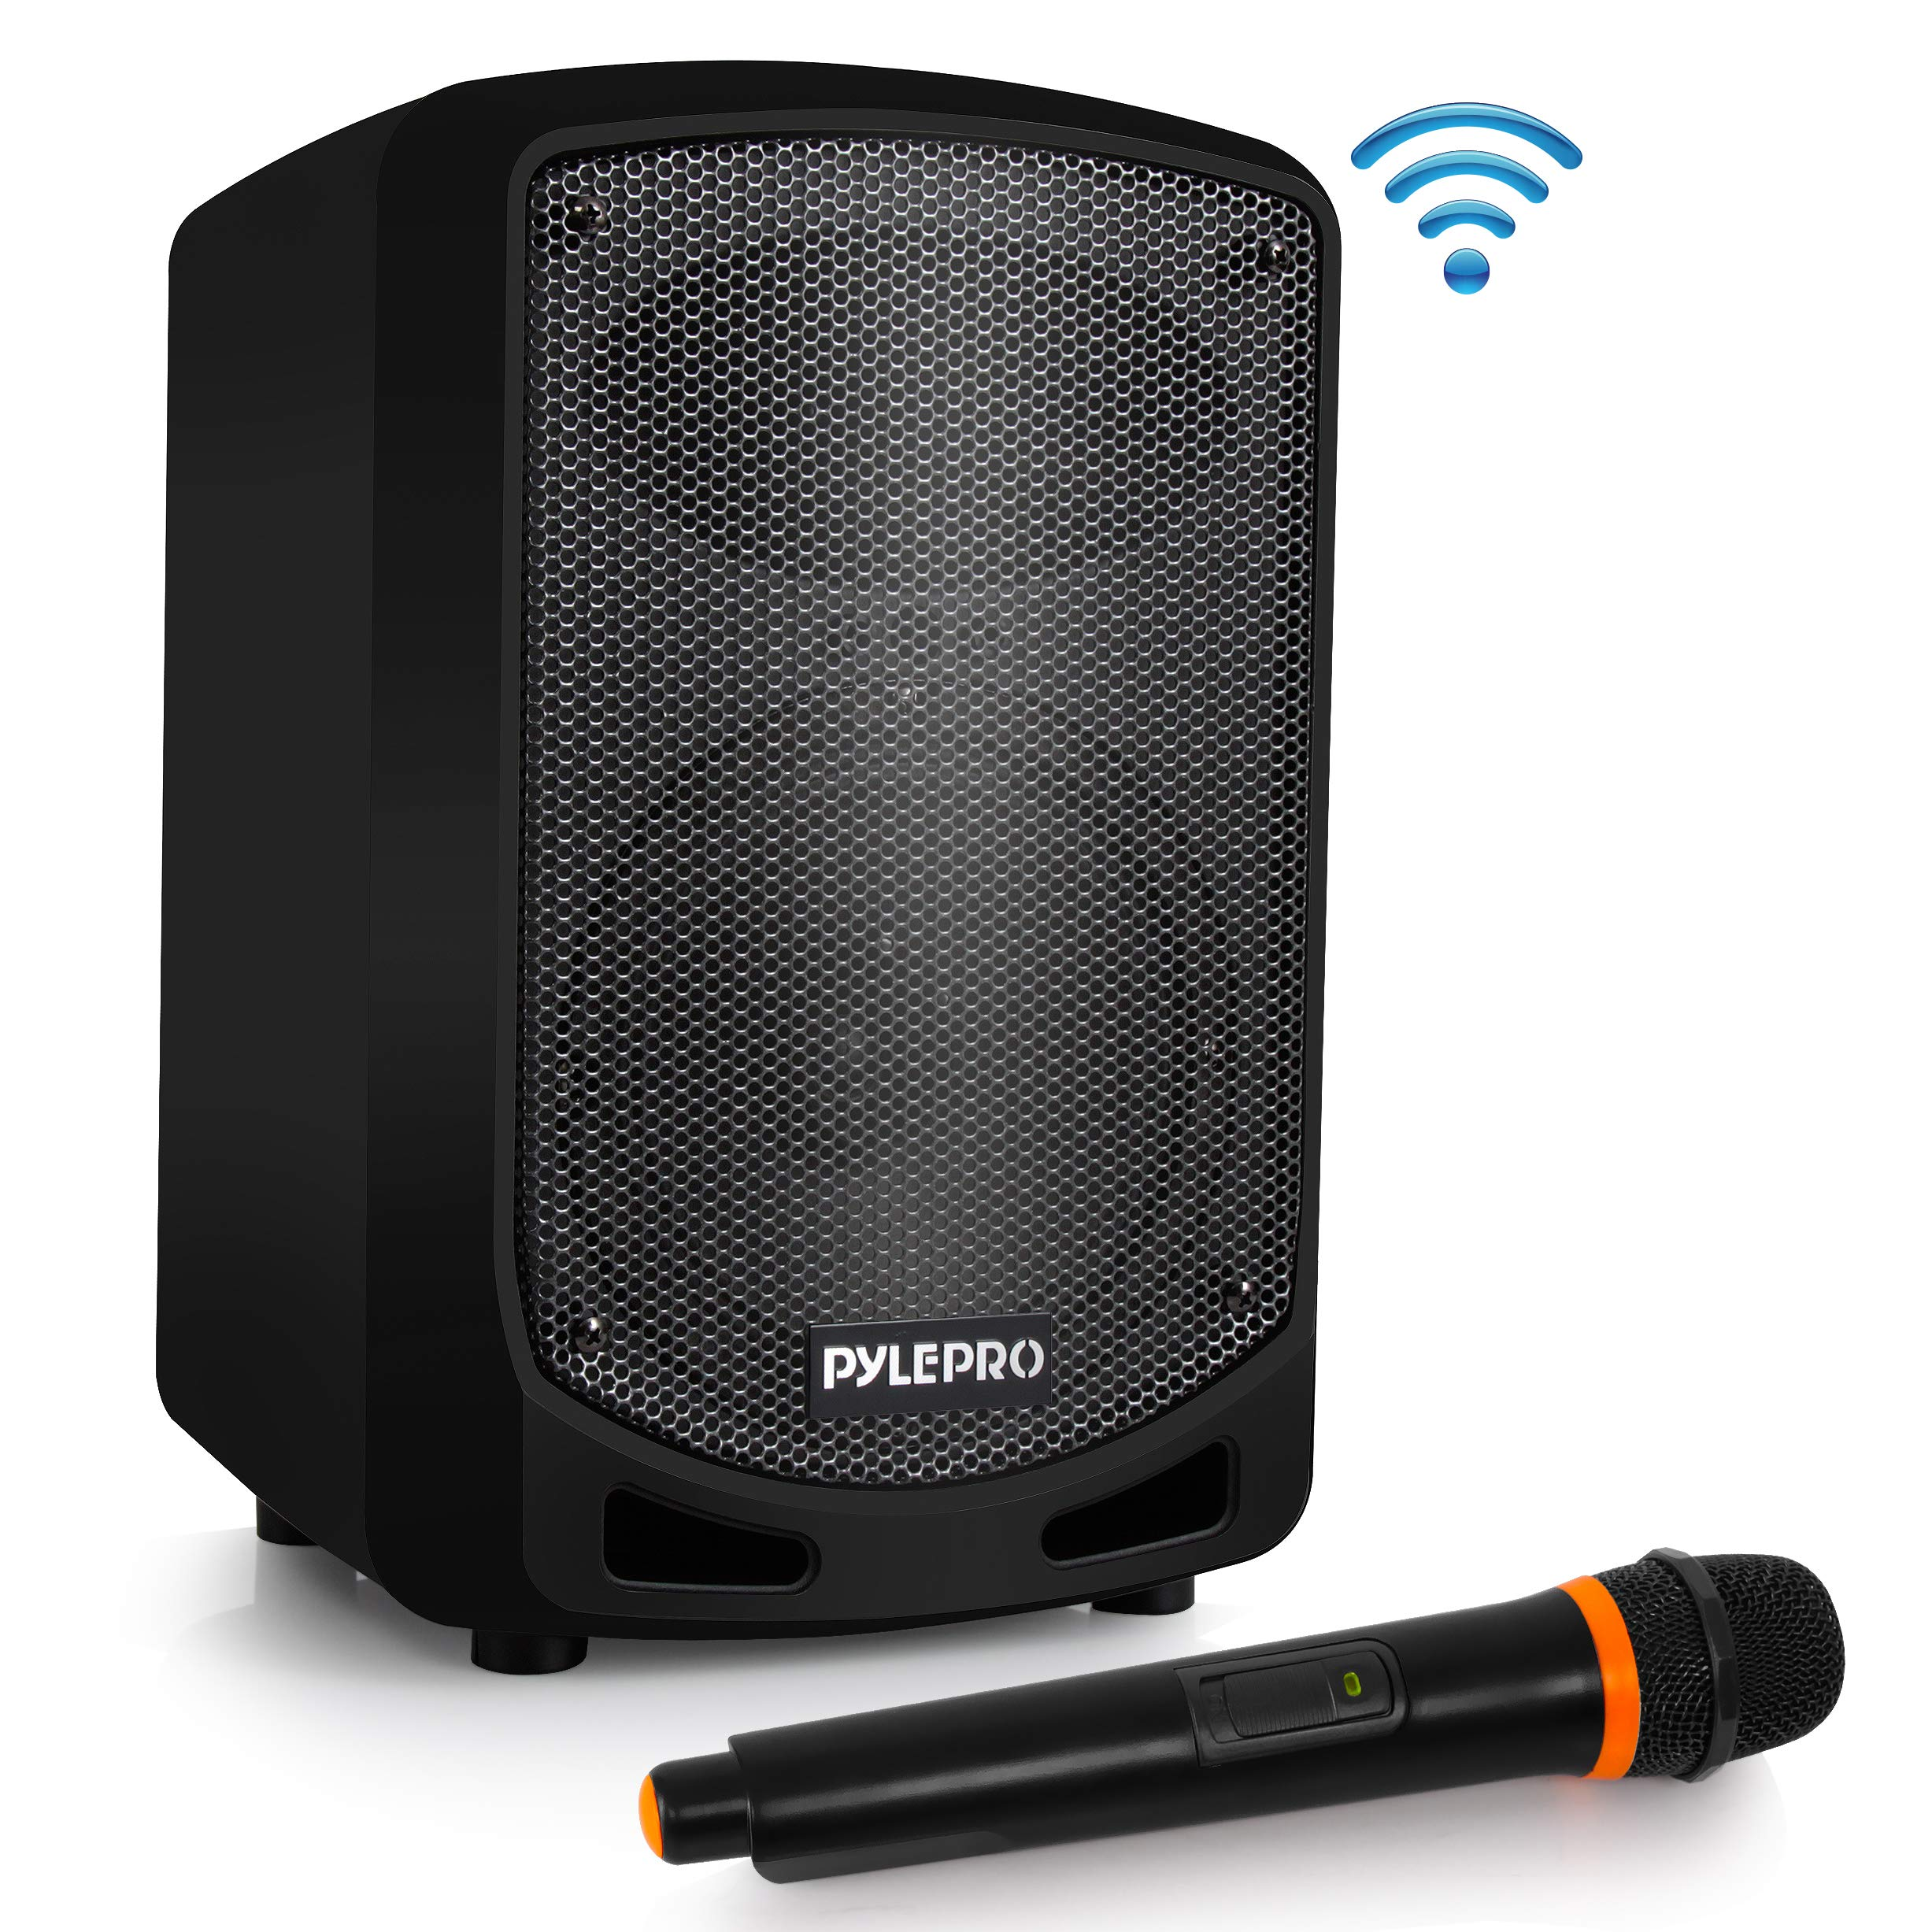 Portable Bluetooth PA Speaker System - Indoor Outdoor Karaoke Sound System w/Wireless Mic, Audio Recording, Rechargeable Battery, USB/SD Reader, Stand Mount, for Party, Crowd Control - Pyle by Pyle